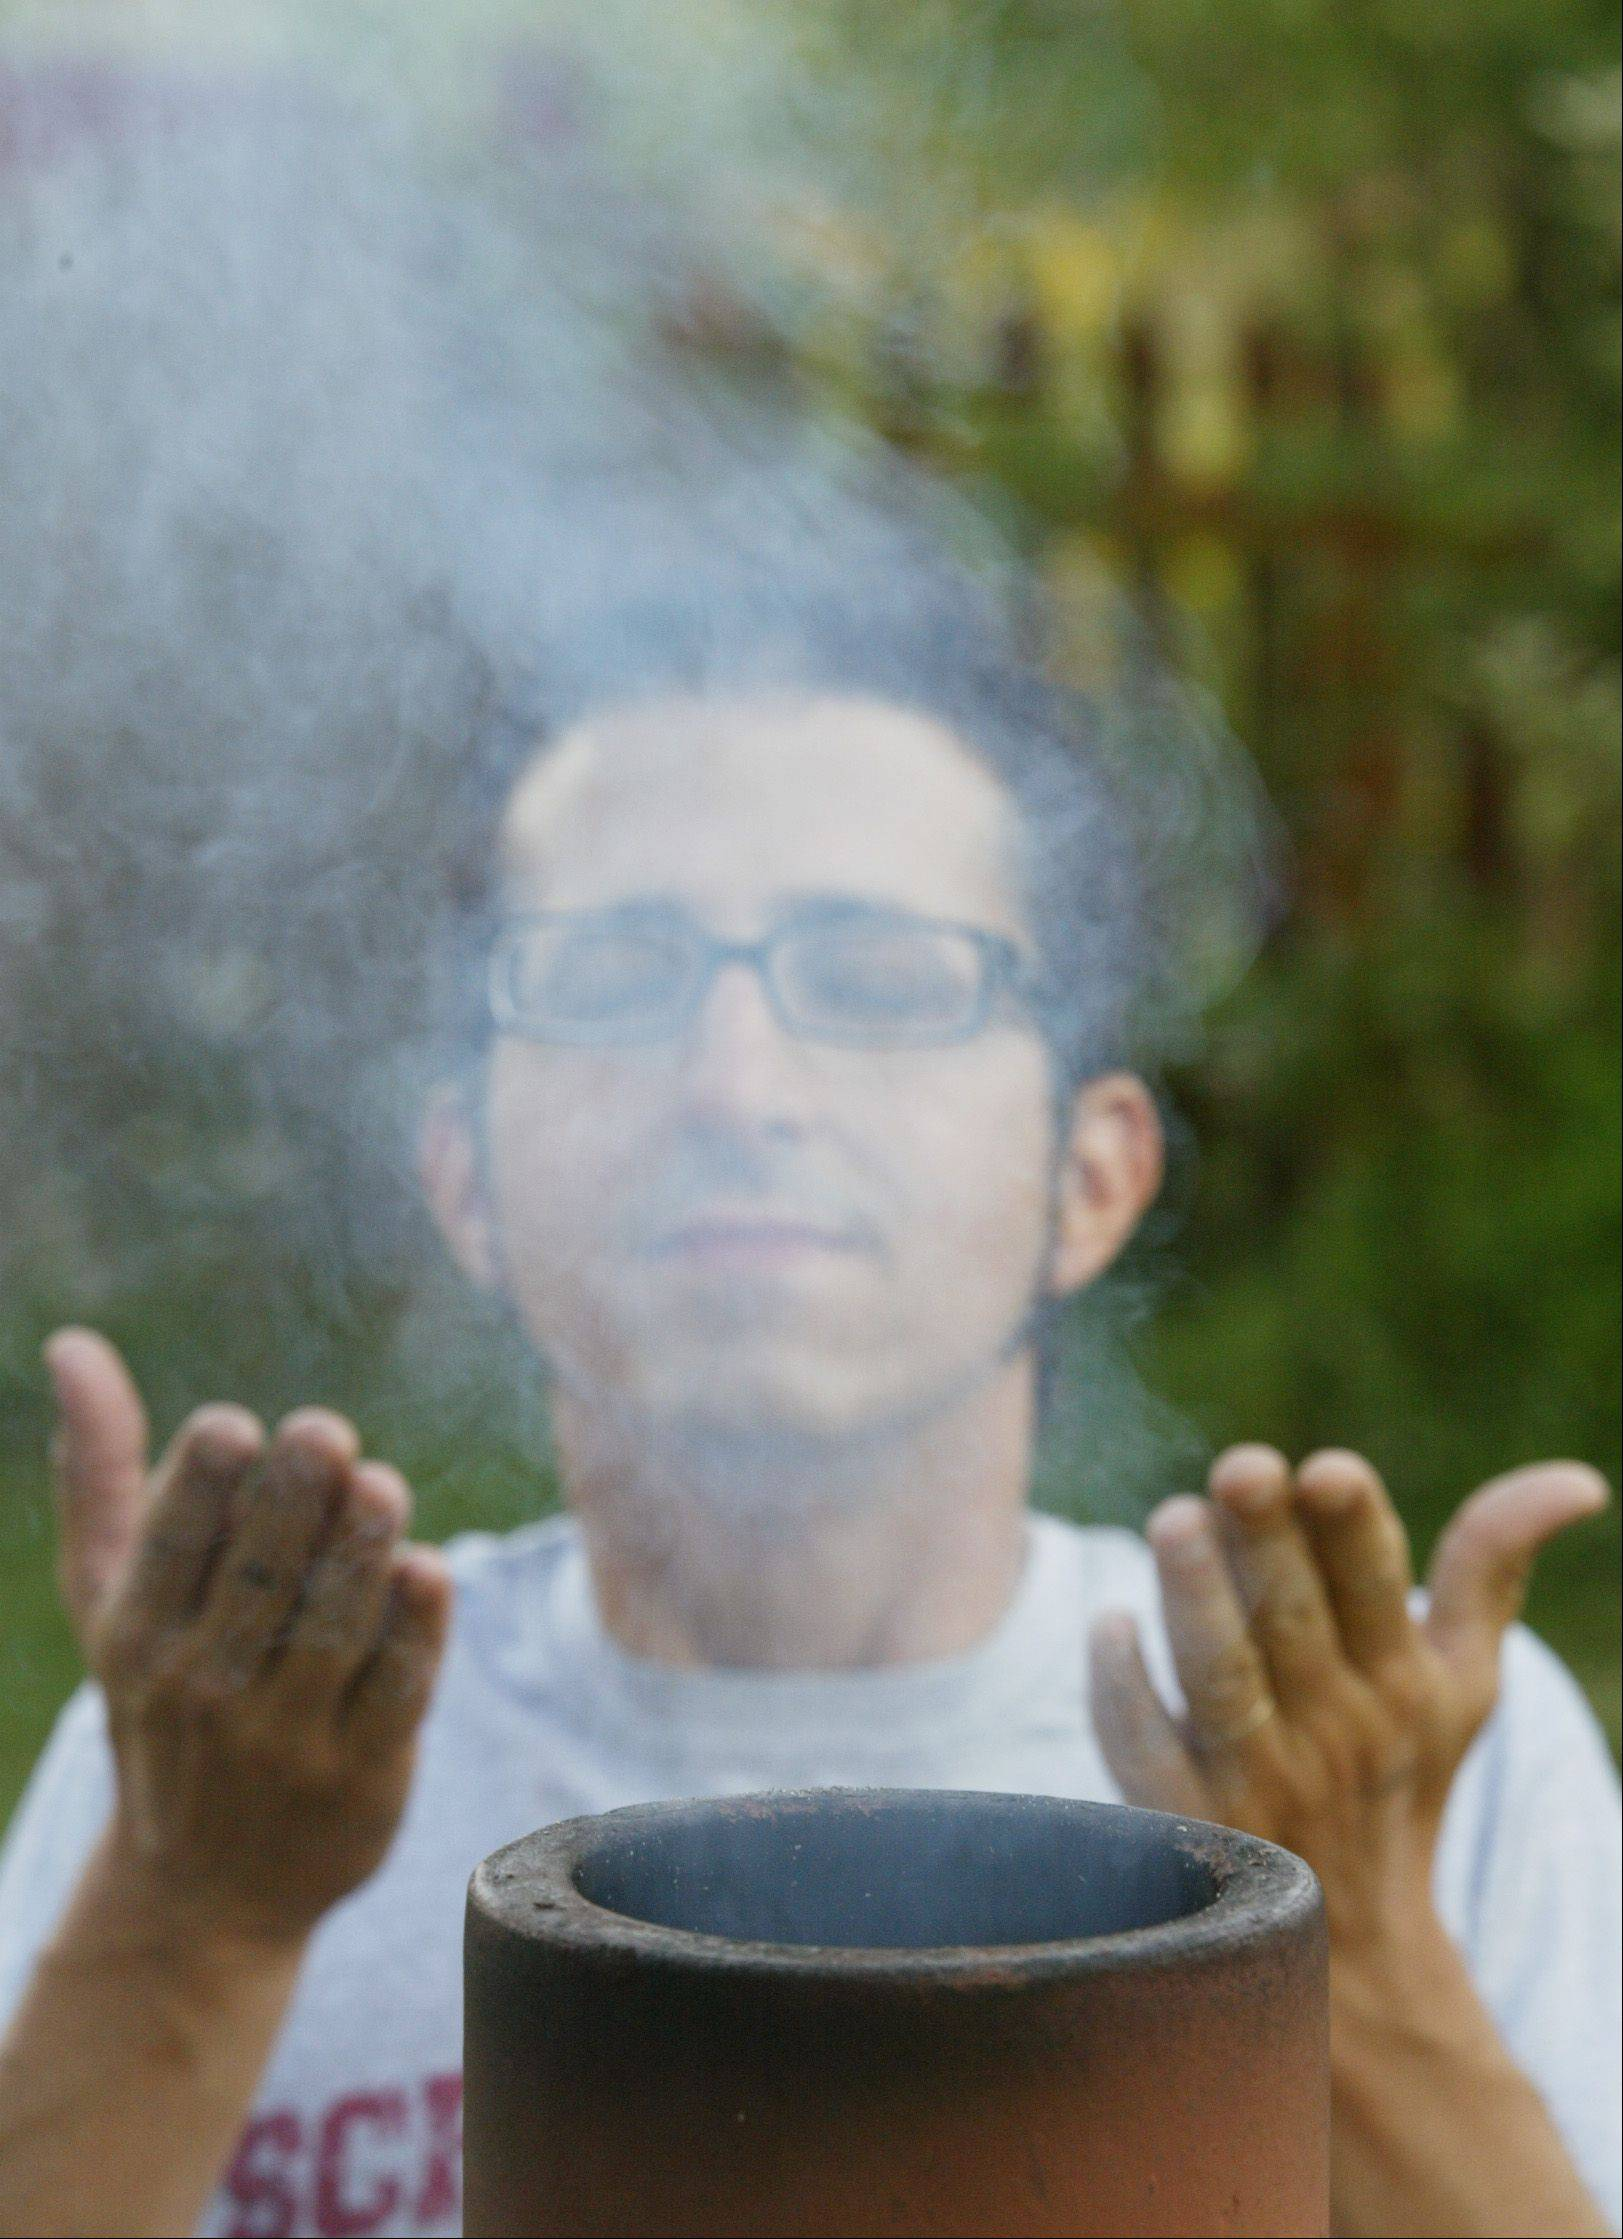 Cook of the Week Challenge entrant Michael Pennisi of Carpentersville, with his favorite ingredient -- smoke.